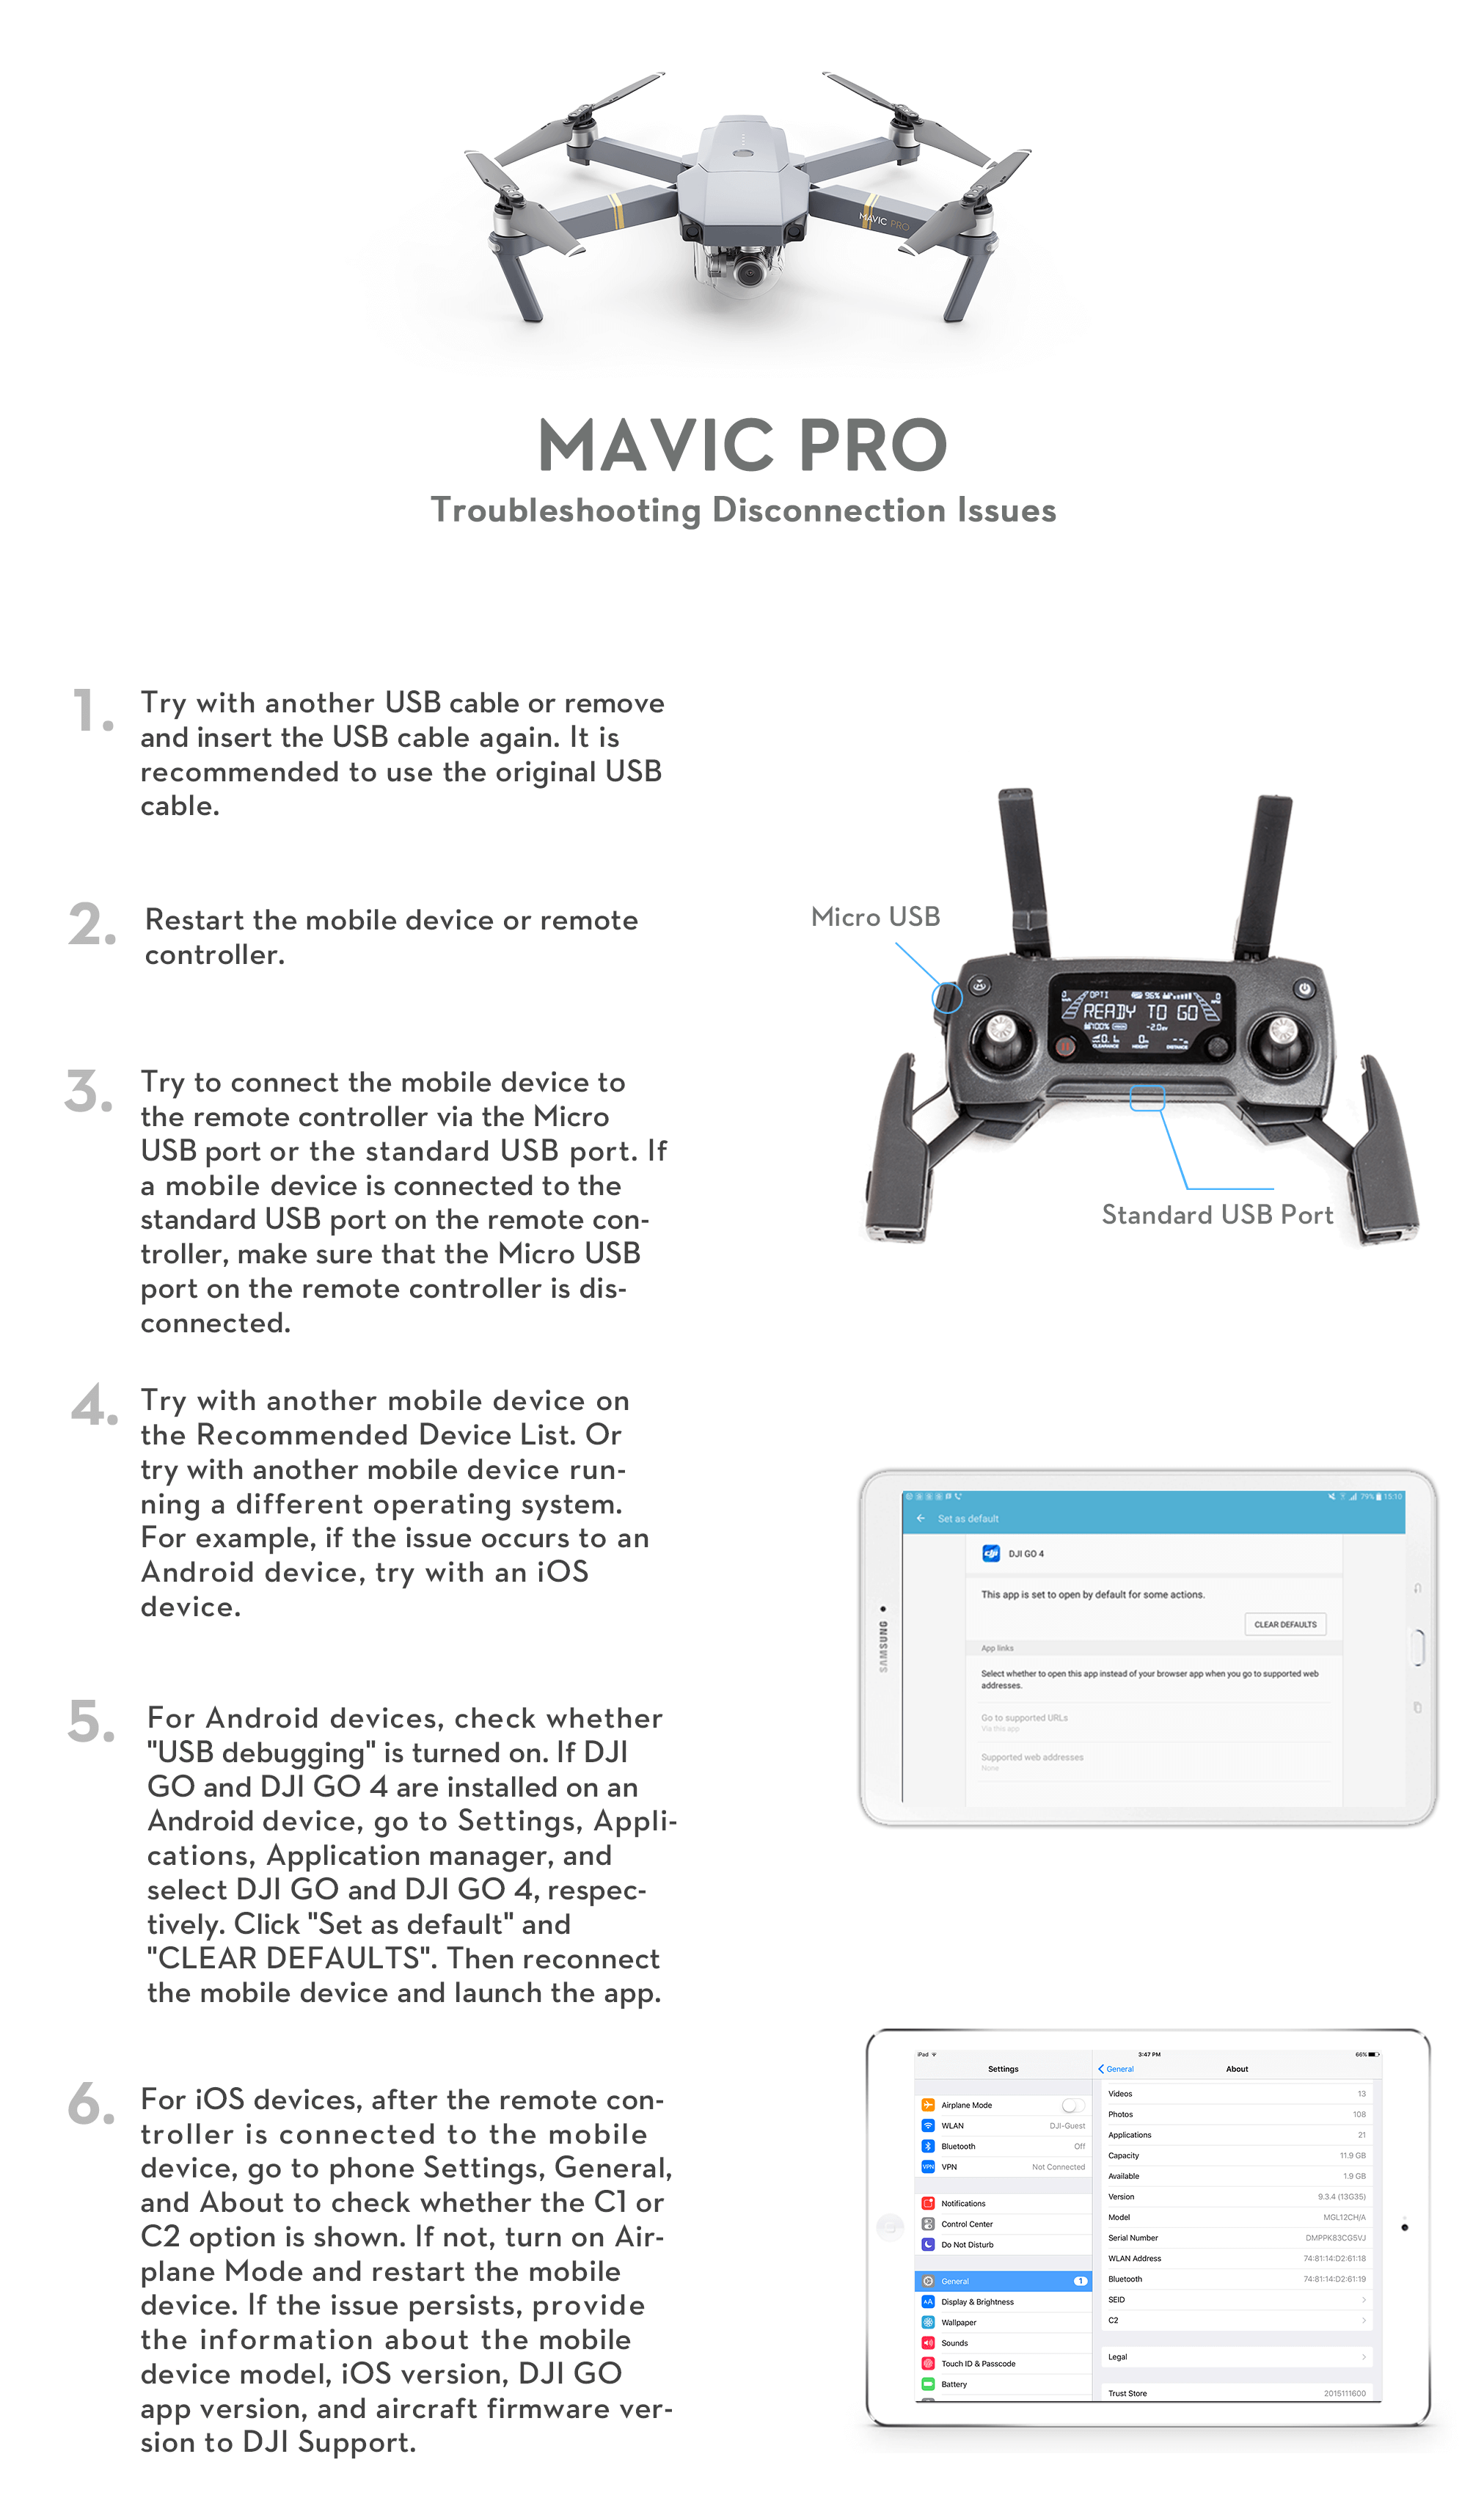 Troubleshooting DJI GO Apps Connection Problems - DJI Guides